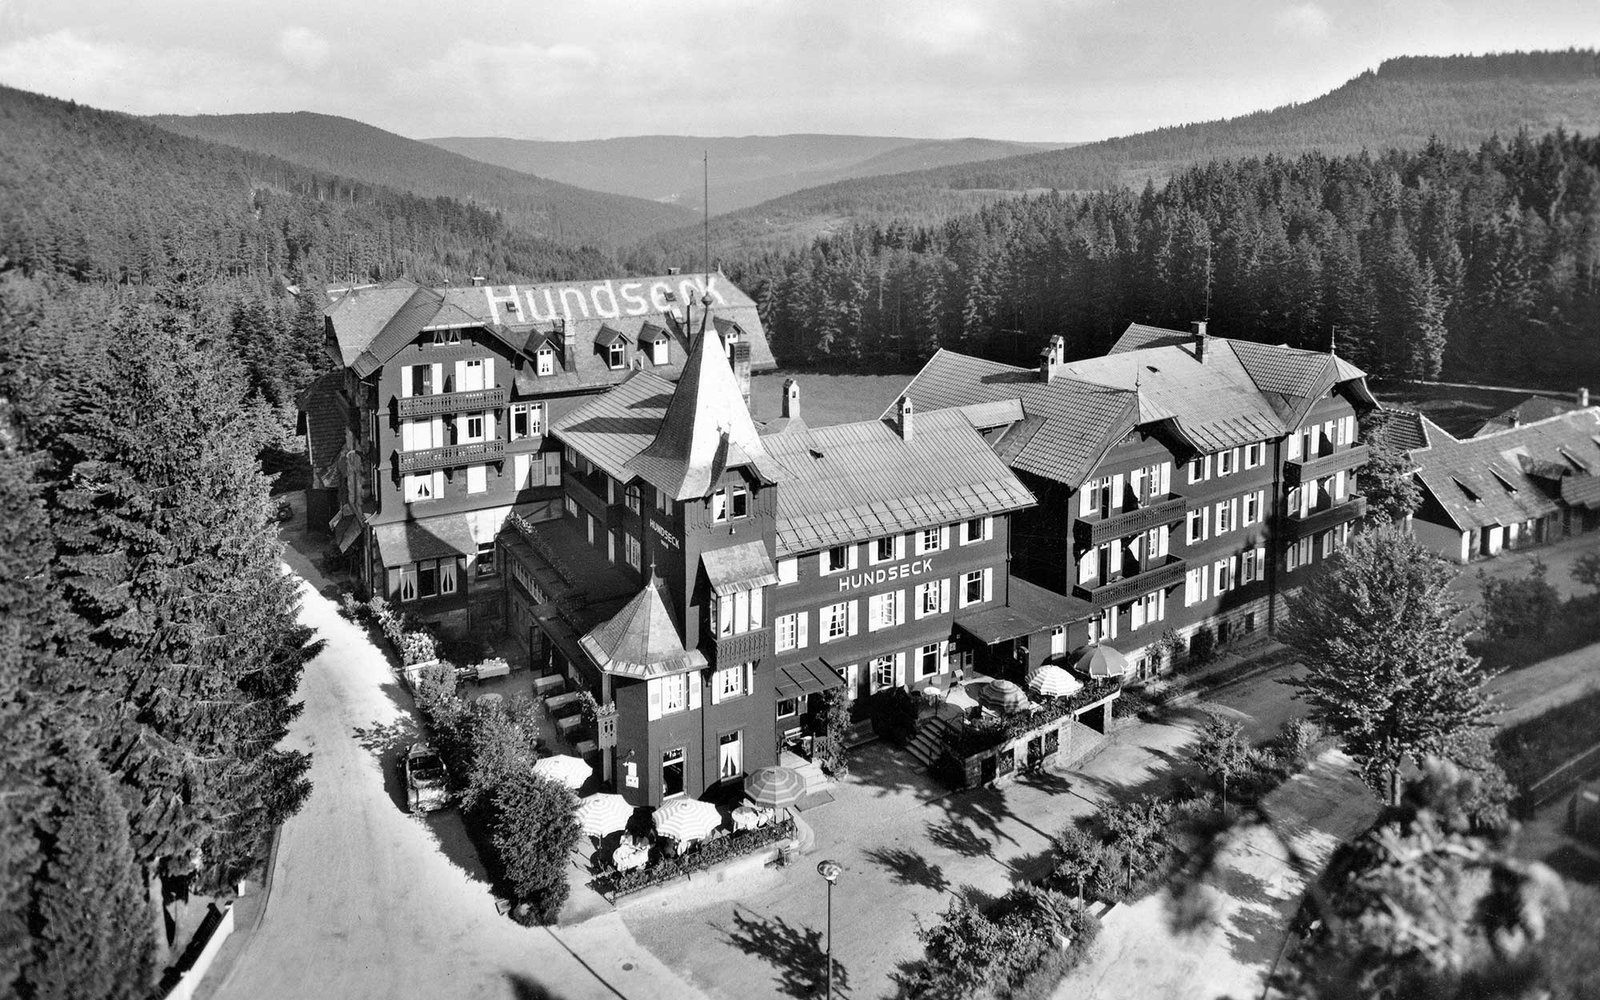 (GERMANY OUT) Germany, Baden-Wuerttemberg, Black Forest: spa hotel Hundseck, date unknown, around 1935, photo by Schoening (Photo by Schöning/ullstein bild via Getty Images)